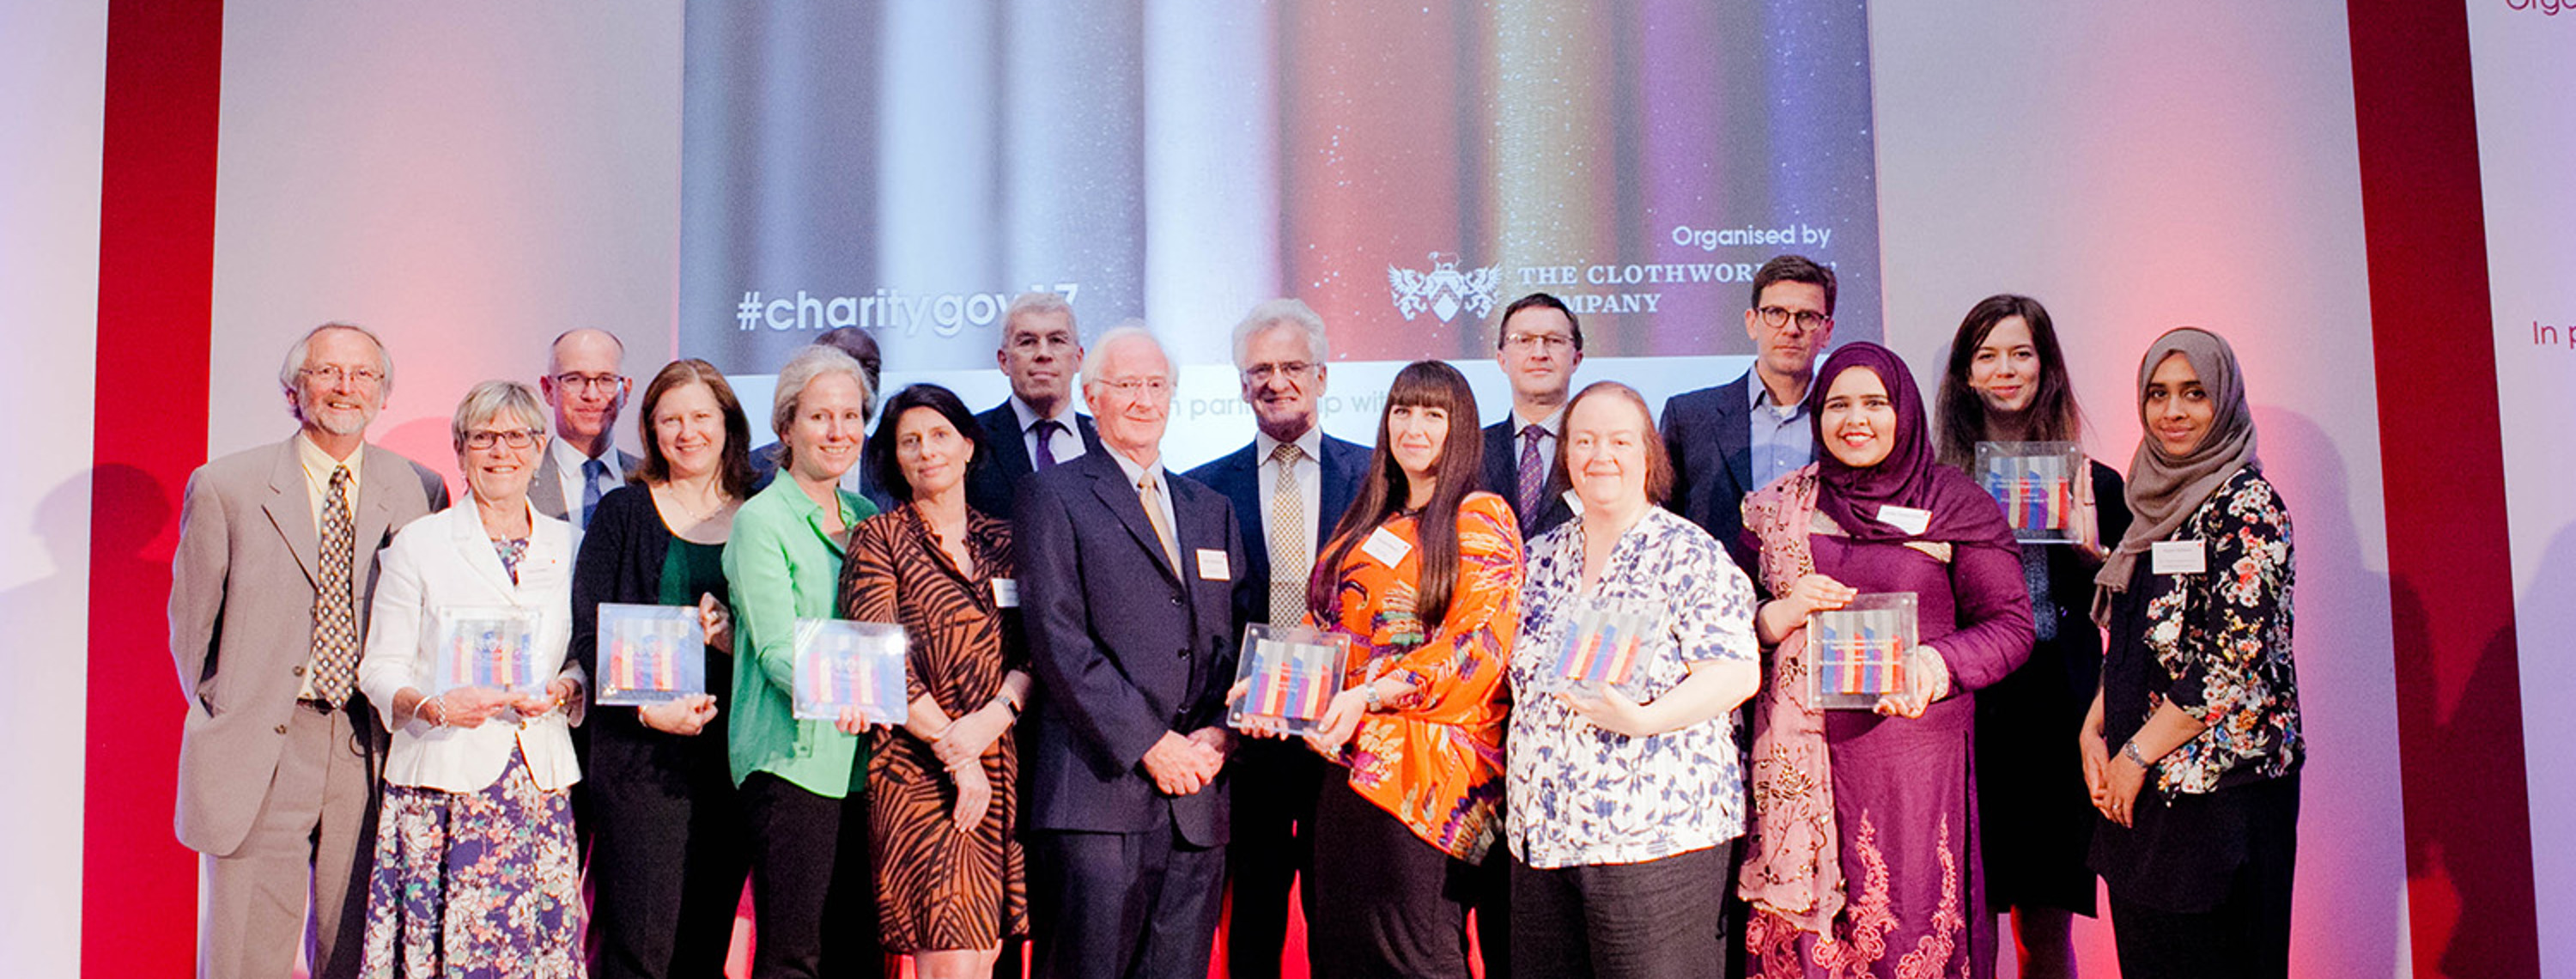 Charity Governance Awards 2017 winners